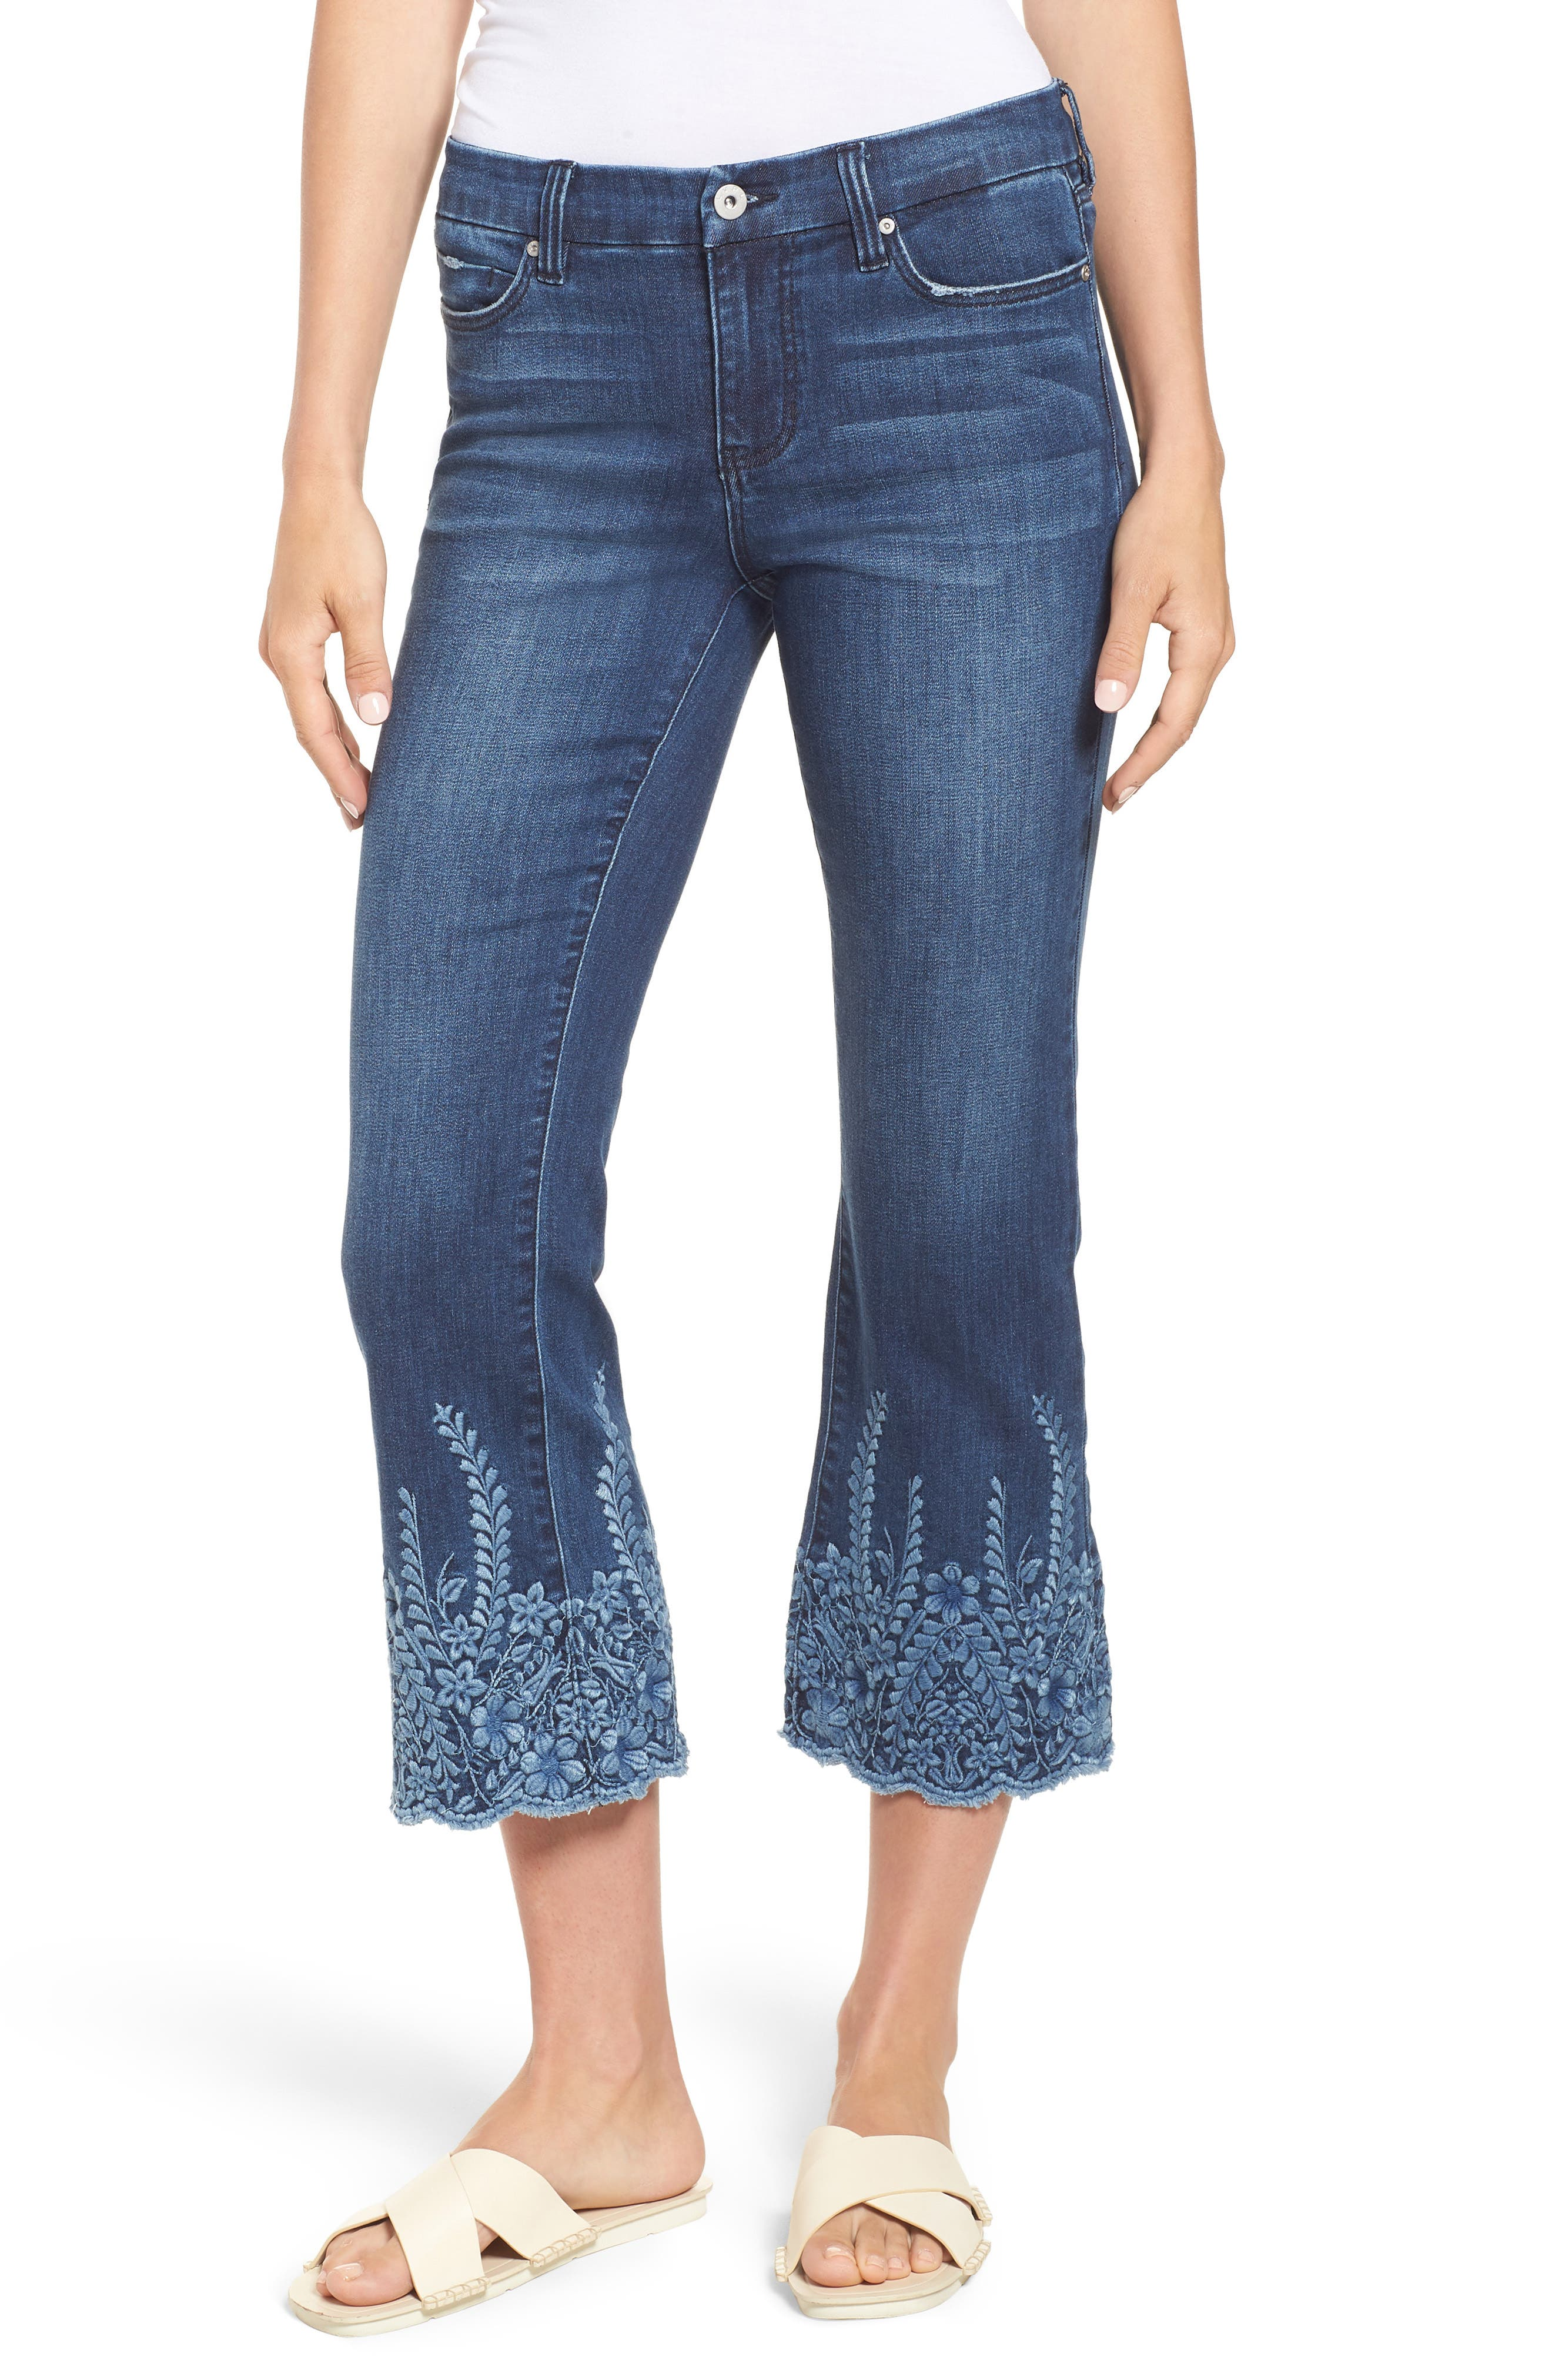 LVPL by Liverpool Coco Embroidered Hem Crop Jeans,                             Main thumbnail 1, color,                             Willow Wash